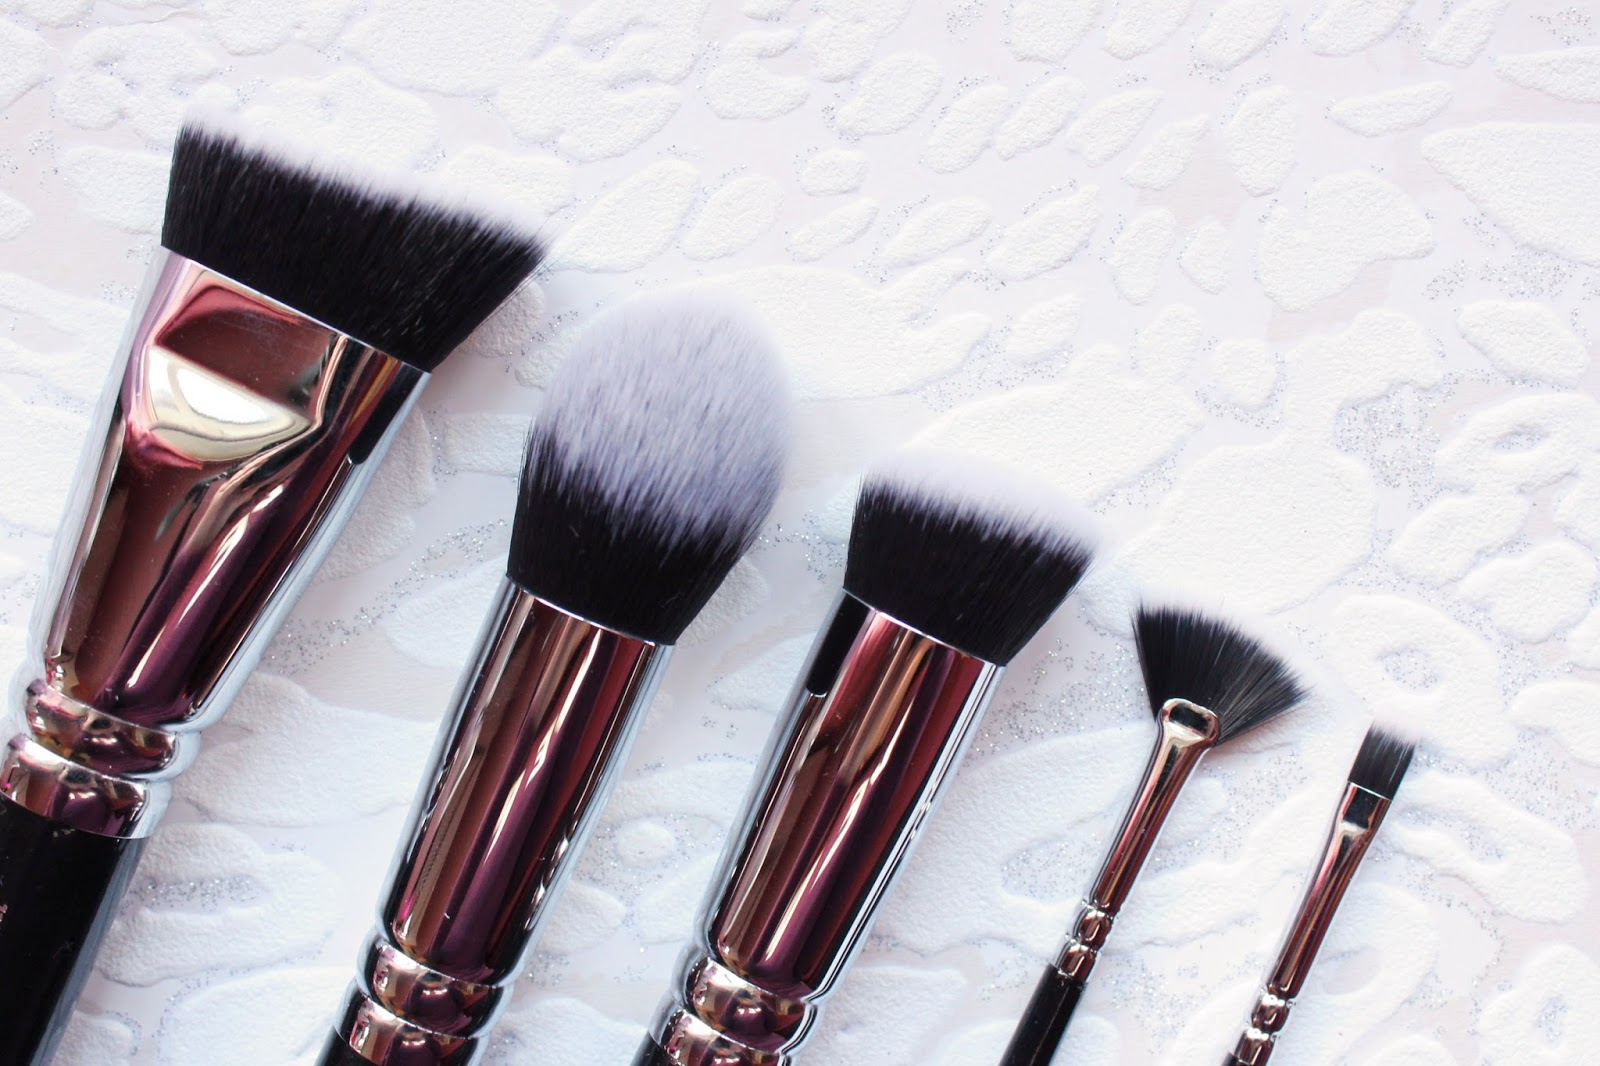 Five NEW Zoeva Brushes